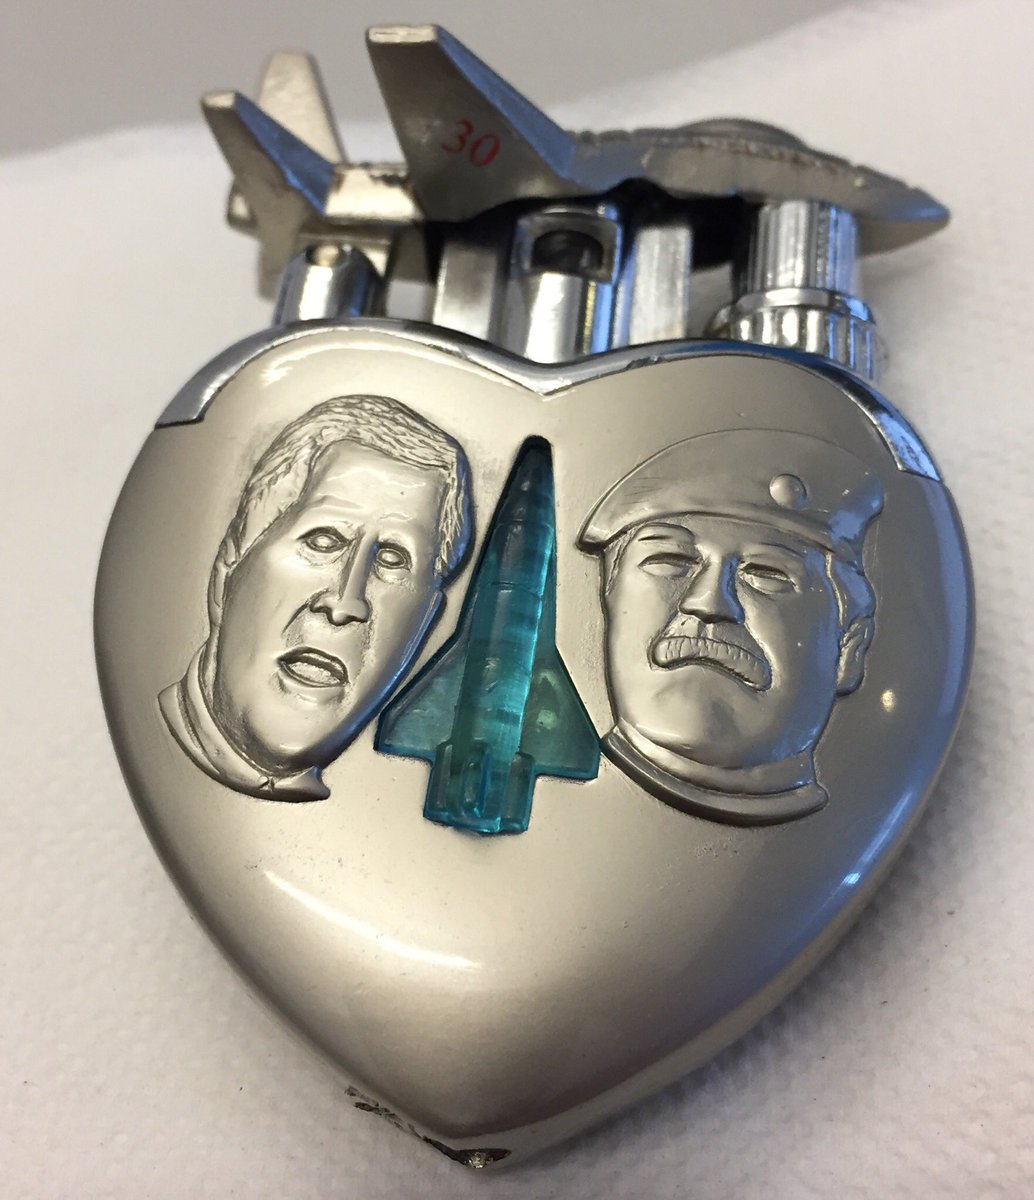 Olivier Knox On Twitter That Trump Kim Coin Reminds Me Of My Best Souvenir Ever This Heart Shaped Lighter With GWB And Saddam The Fighter Clicks Up